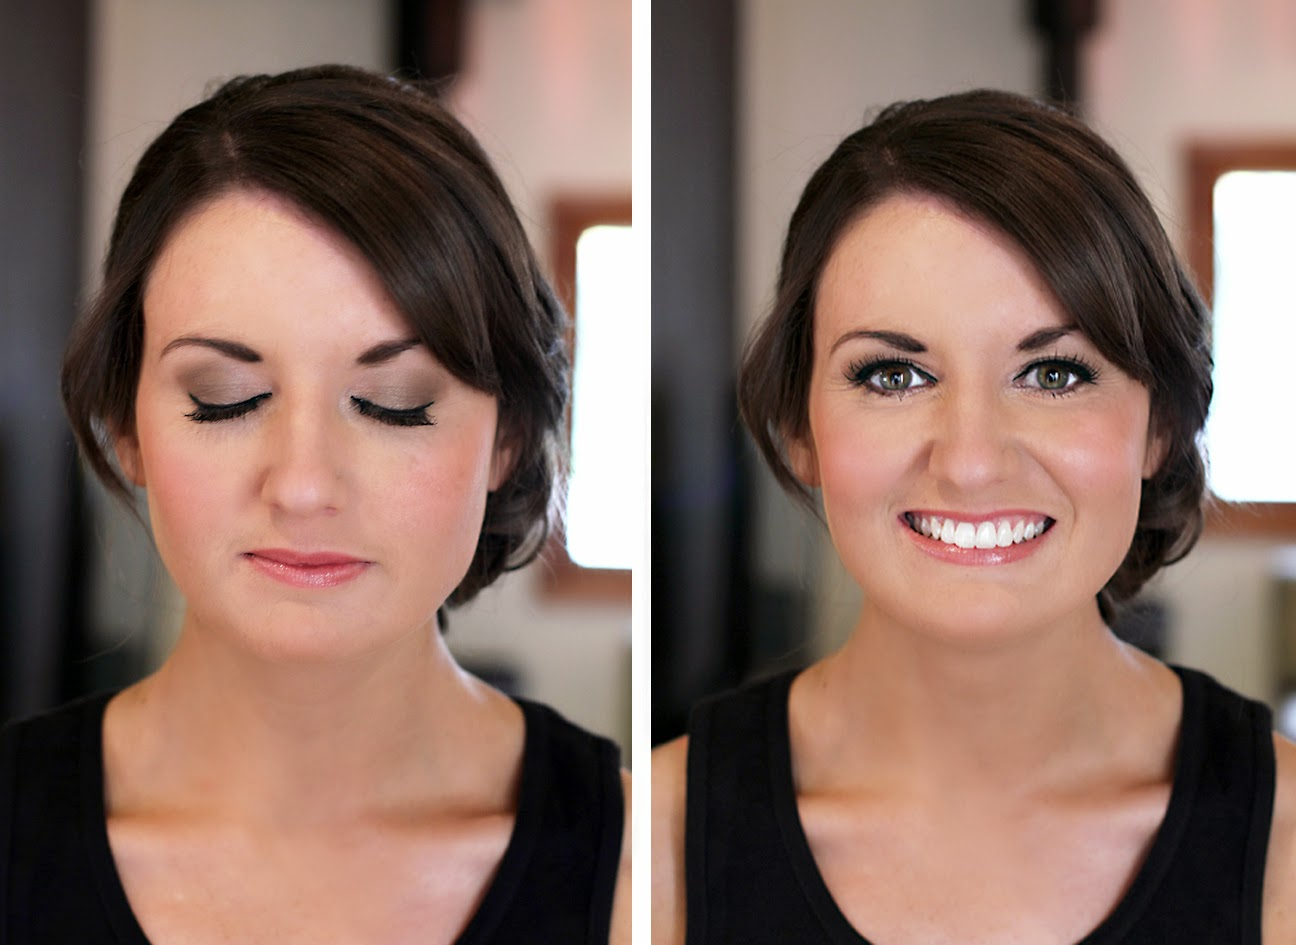 Beautiful Bride makeup. Natural Taupe eyeshadow & gloss lips. Makeup by Katie Dawson from Perle Jewellery & Makeup